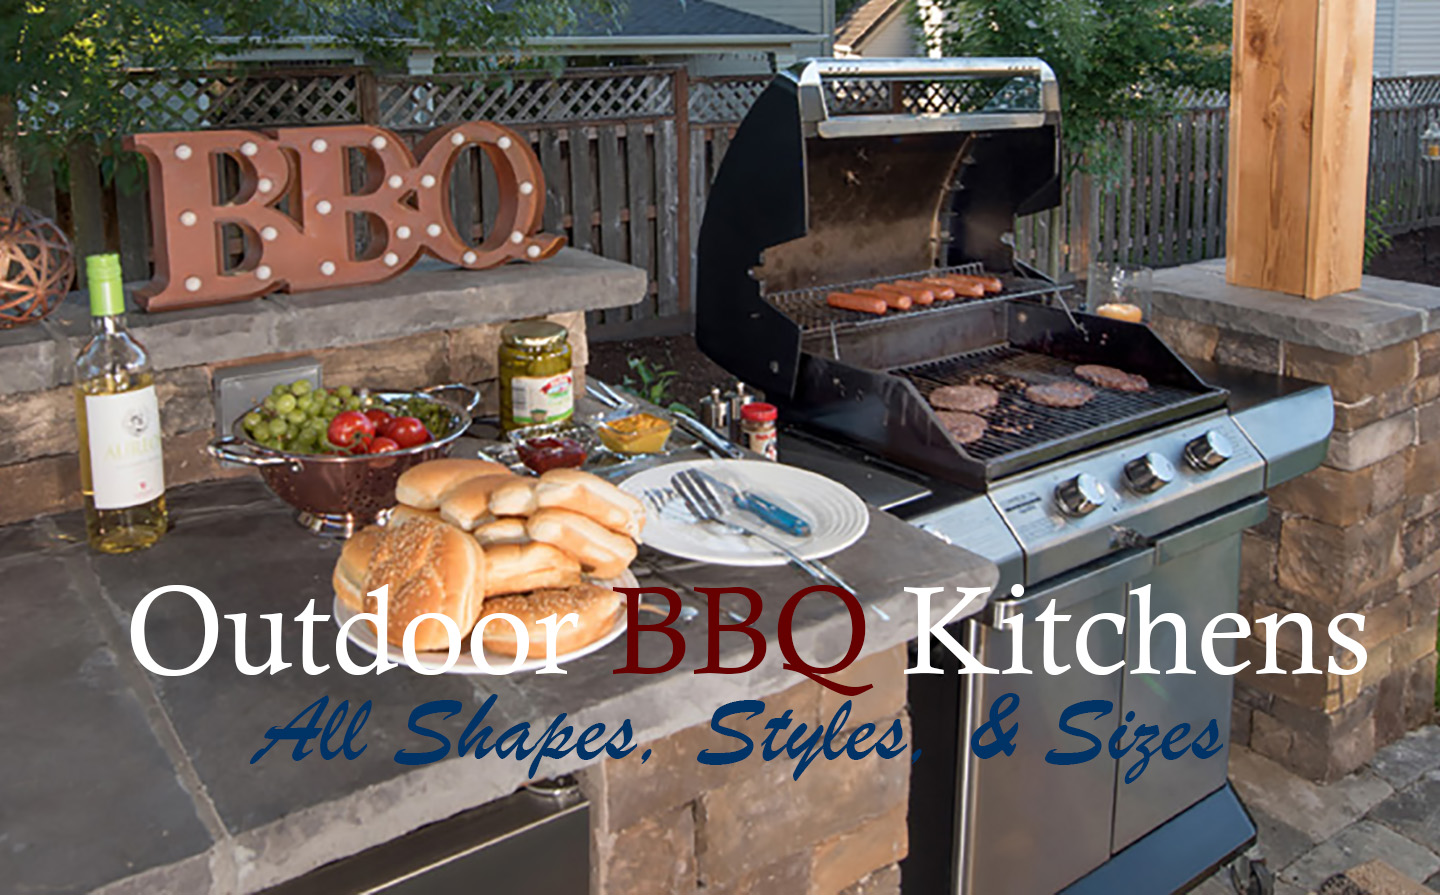 Outdoor BBQ Kitchens - Paradise Restored Landscaping